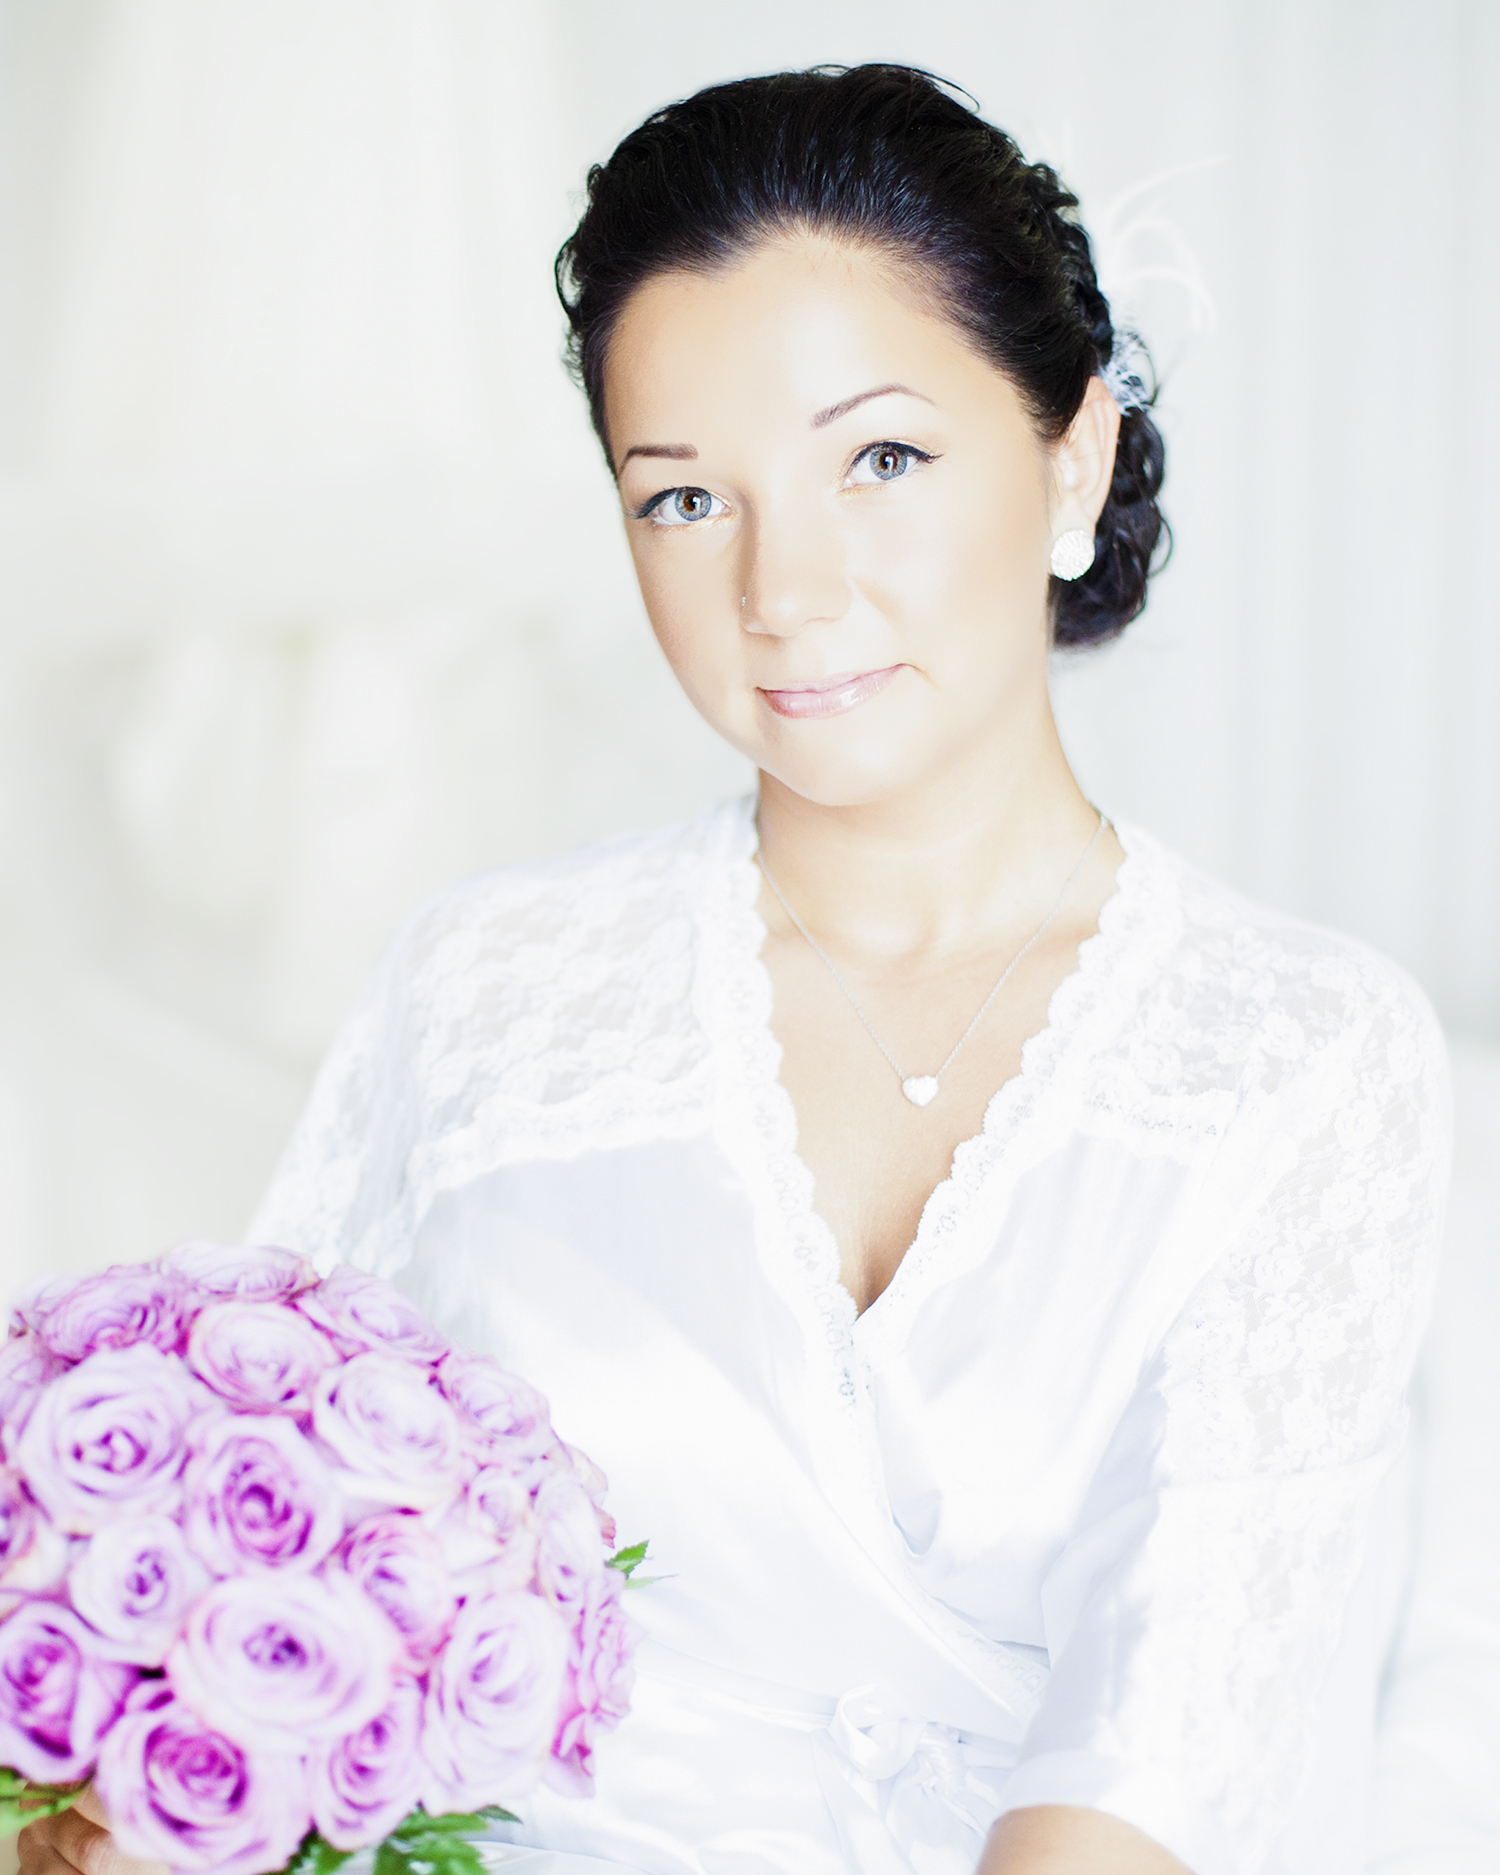 Portrait of a bride with a bouquet or roses